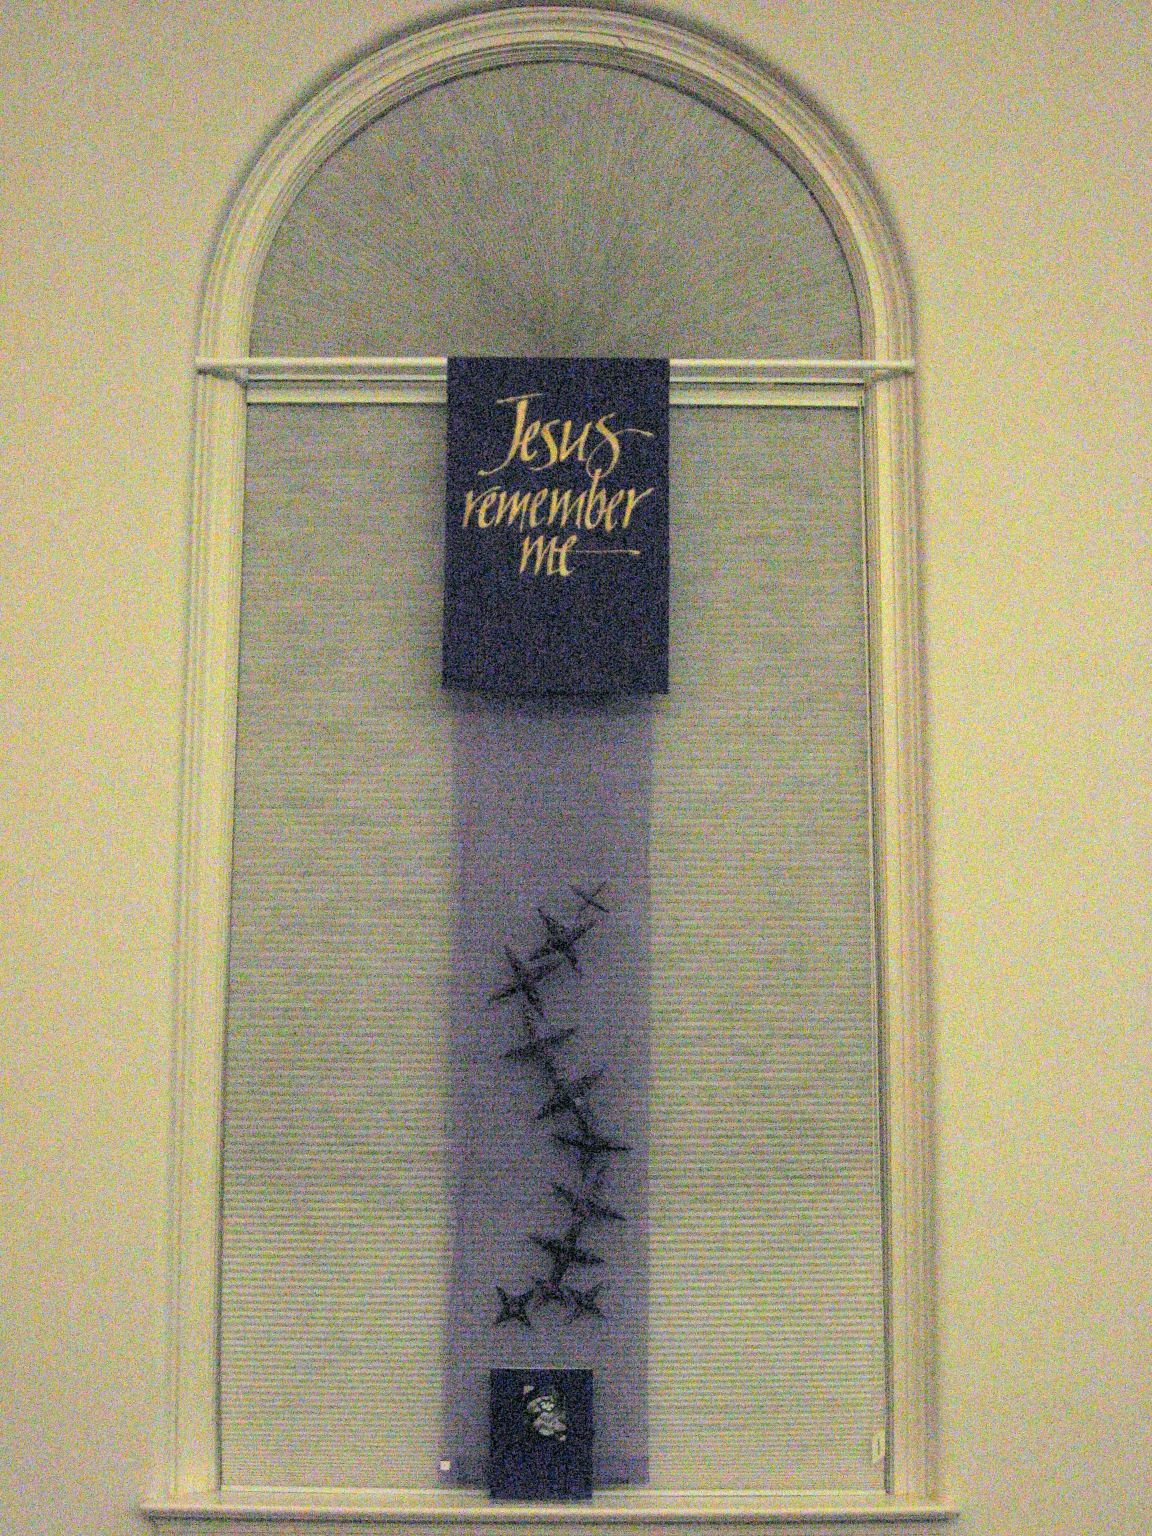 Nave Window Installation (1 of 7), community-made thorns with Meditation Folder, Lent